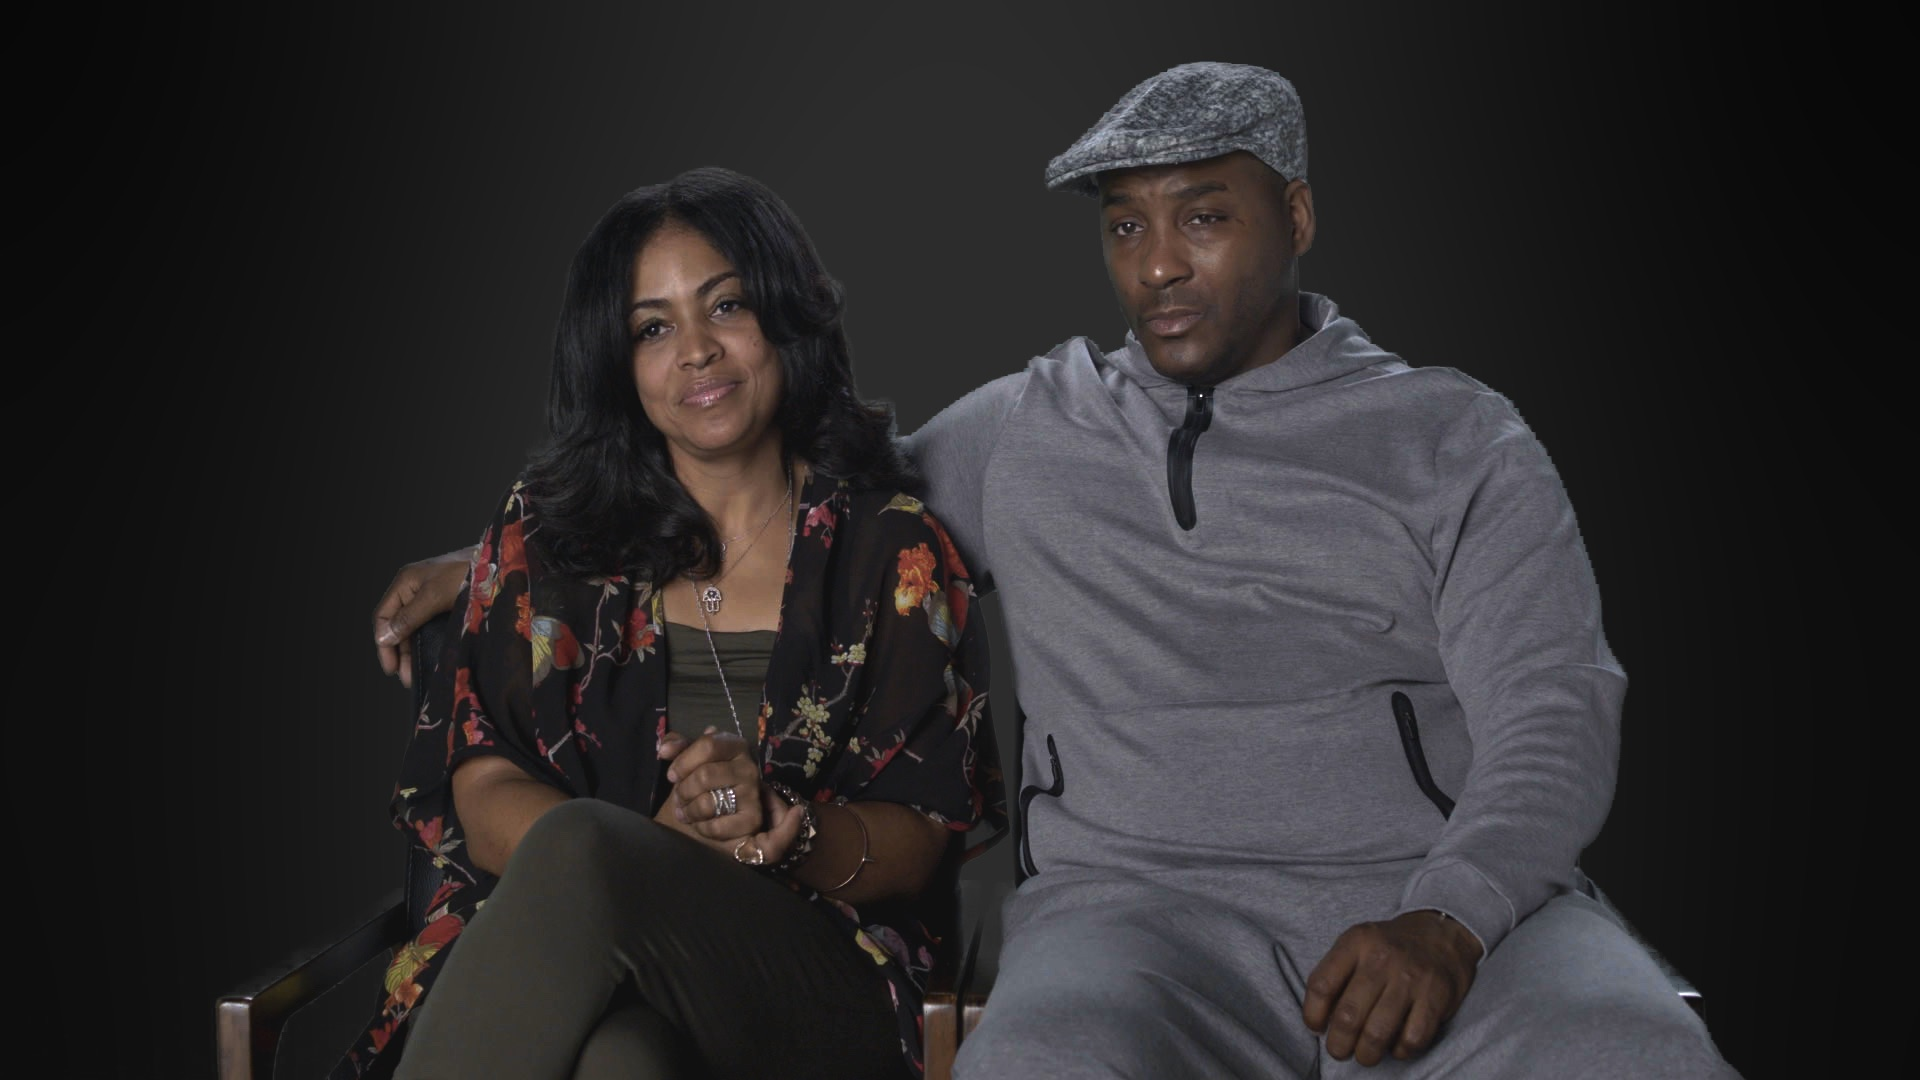 Alice Clary and Angelo Clary, the parents of Azriel Clary, in 'Surviving R. Kelly'